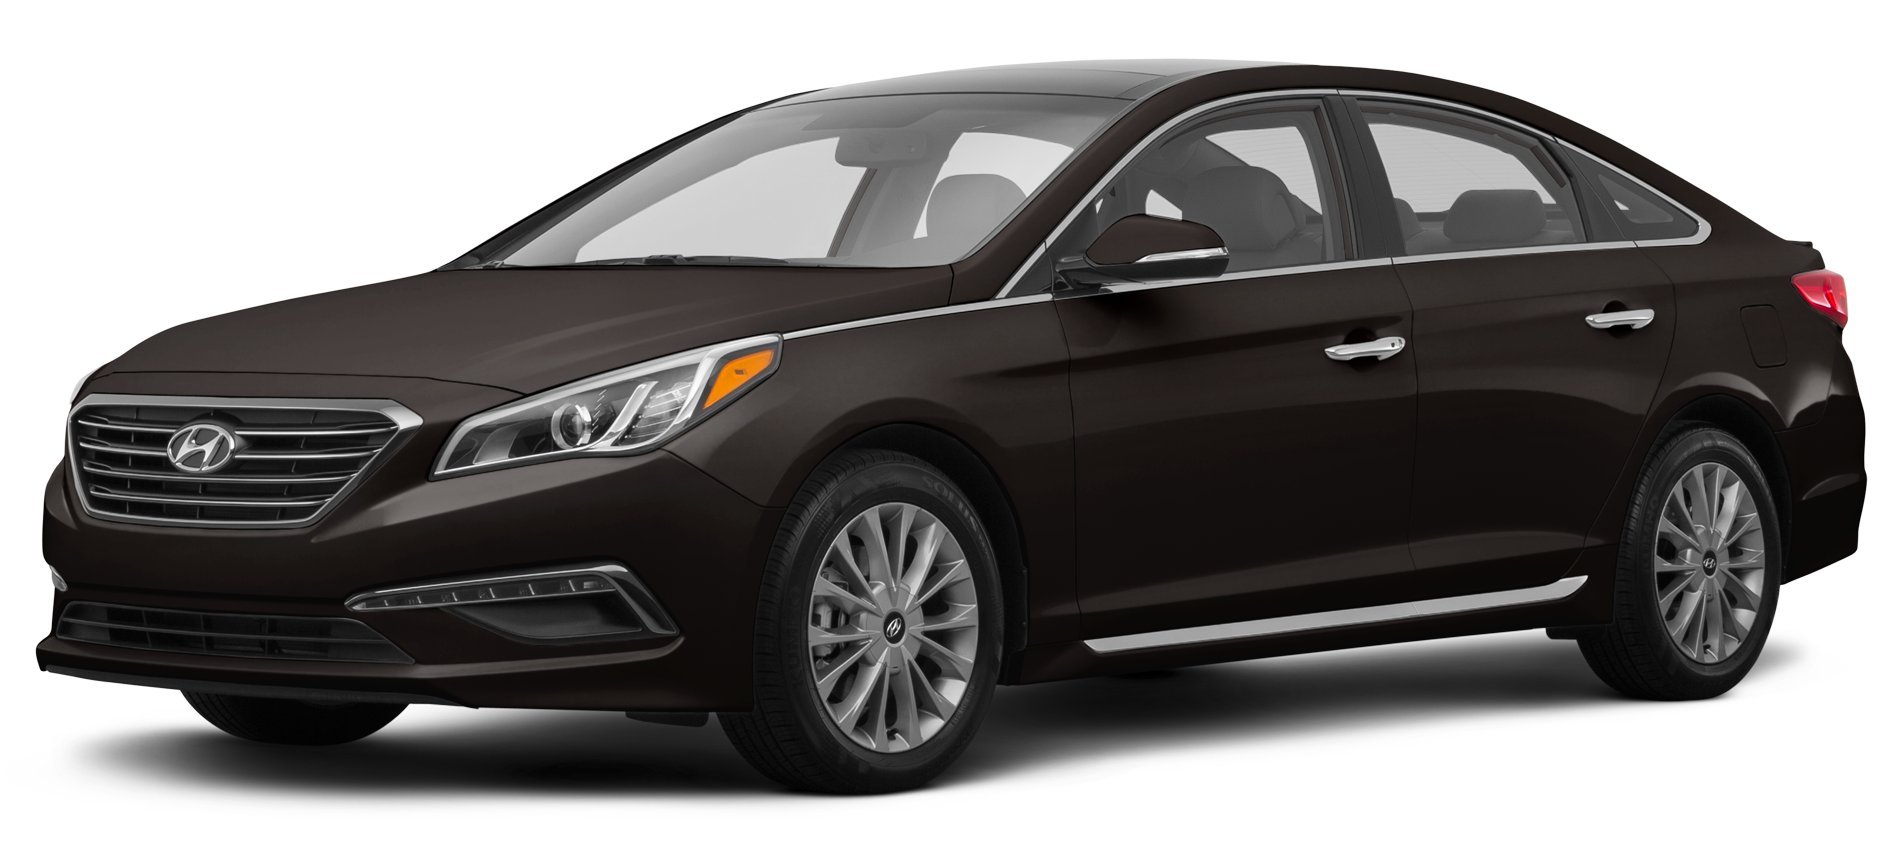 Amazon.com: 2015 Hyundai Sonata Reviews, Images, and Specs ...